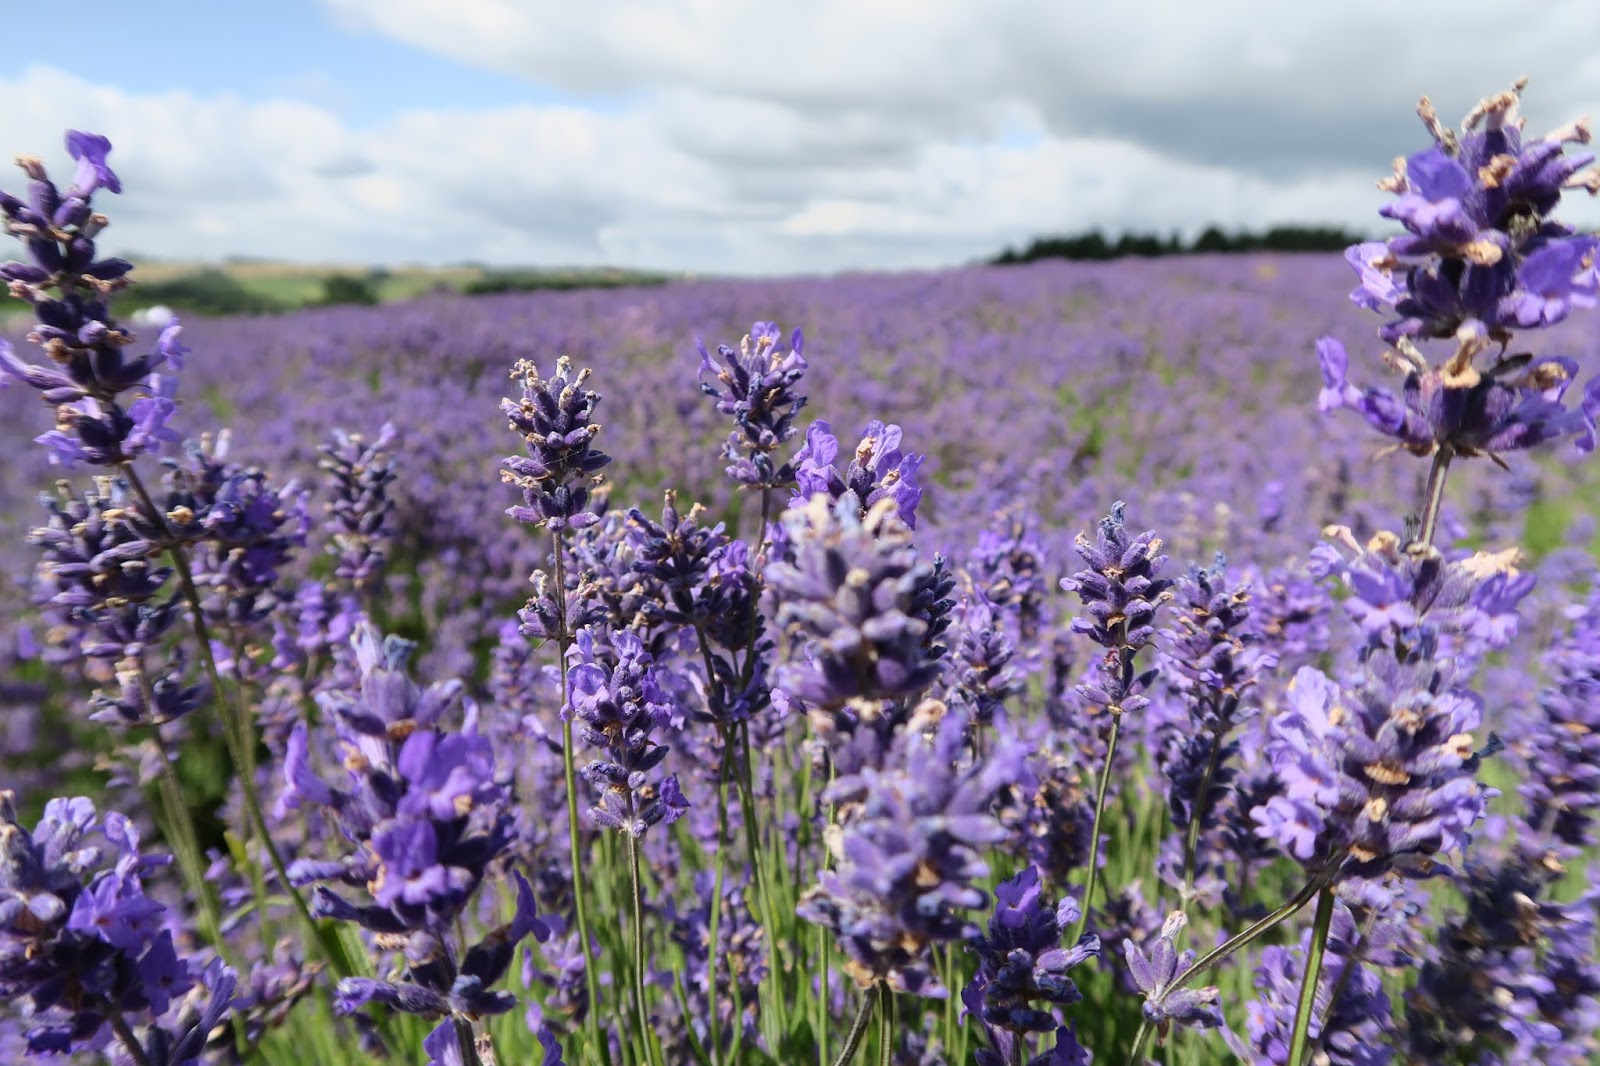 in focus are several strands of lavender. In the background and out of focus a lavender field can be seen